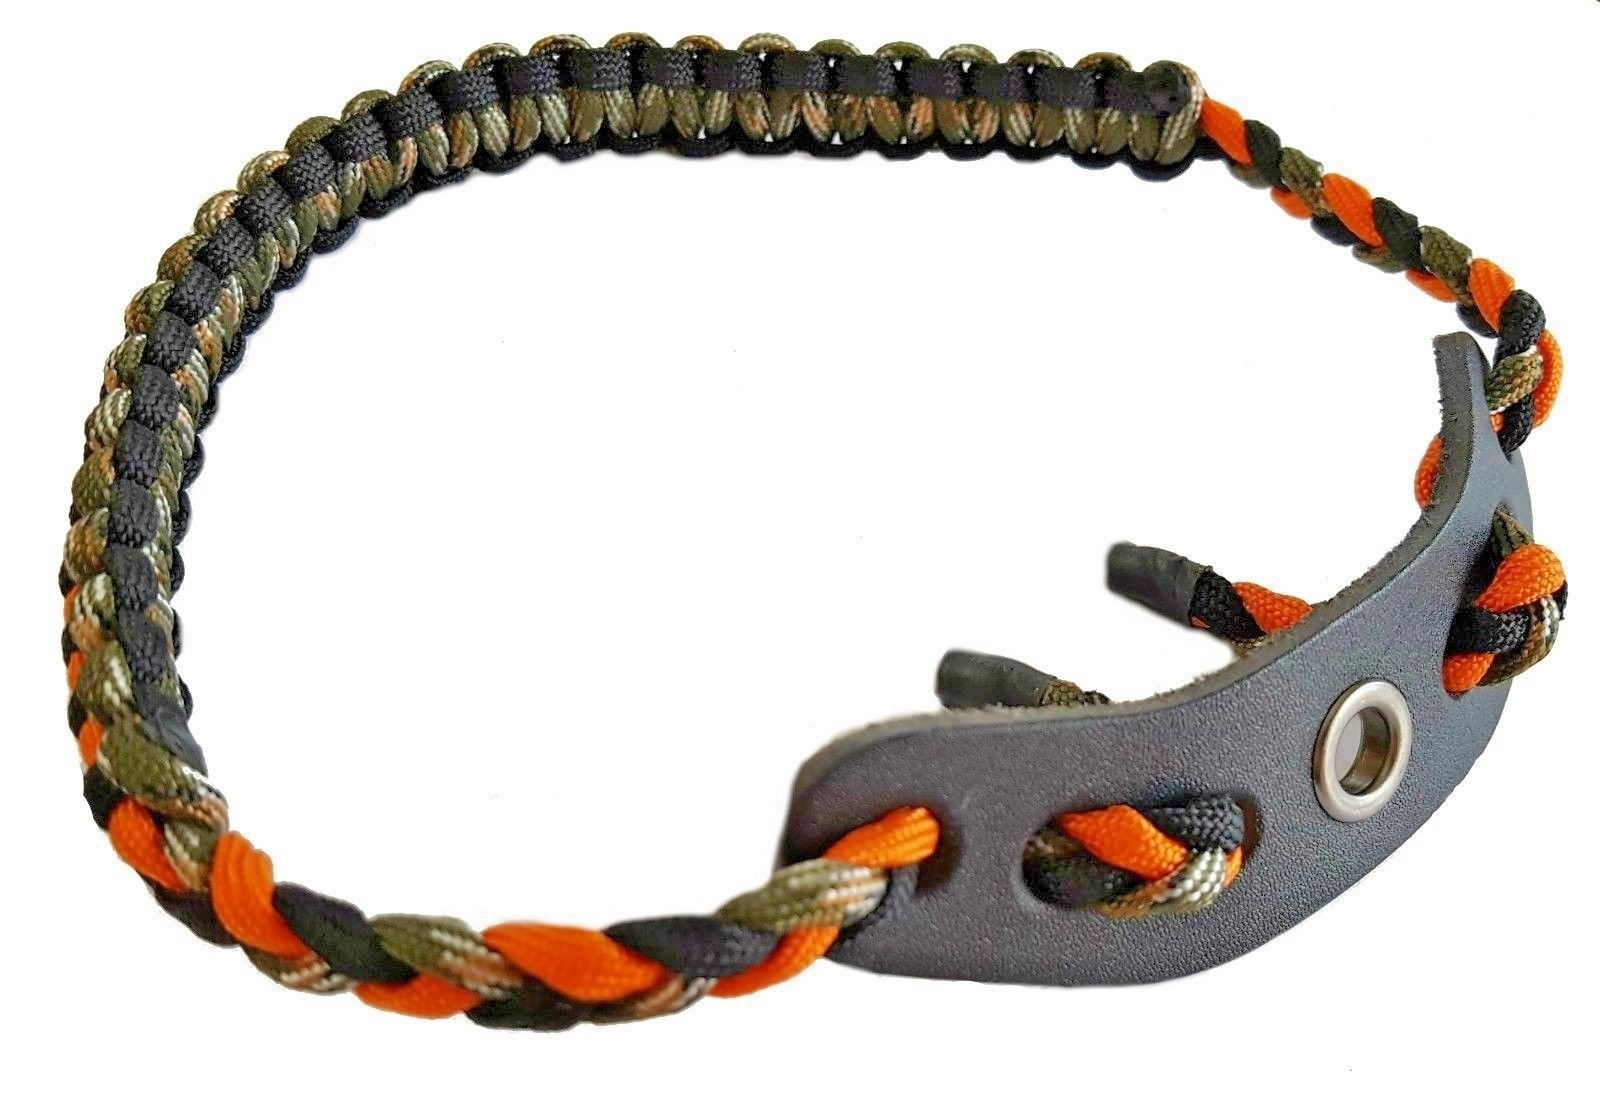 Fibrus Bow Wrist Sling 550 Paracord - Survival Hunting Shooting - Durable Leather with Grommet | Black | Camo | Orange